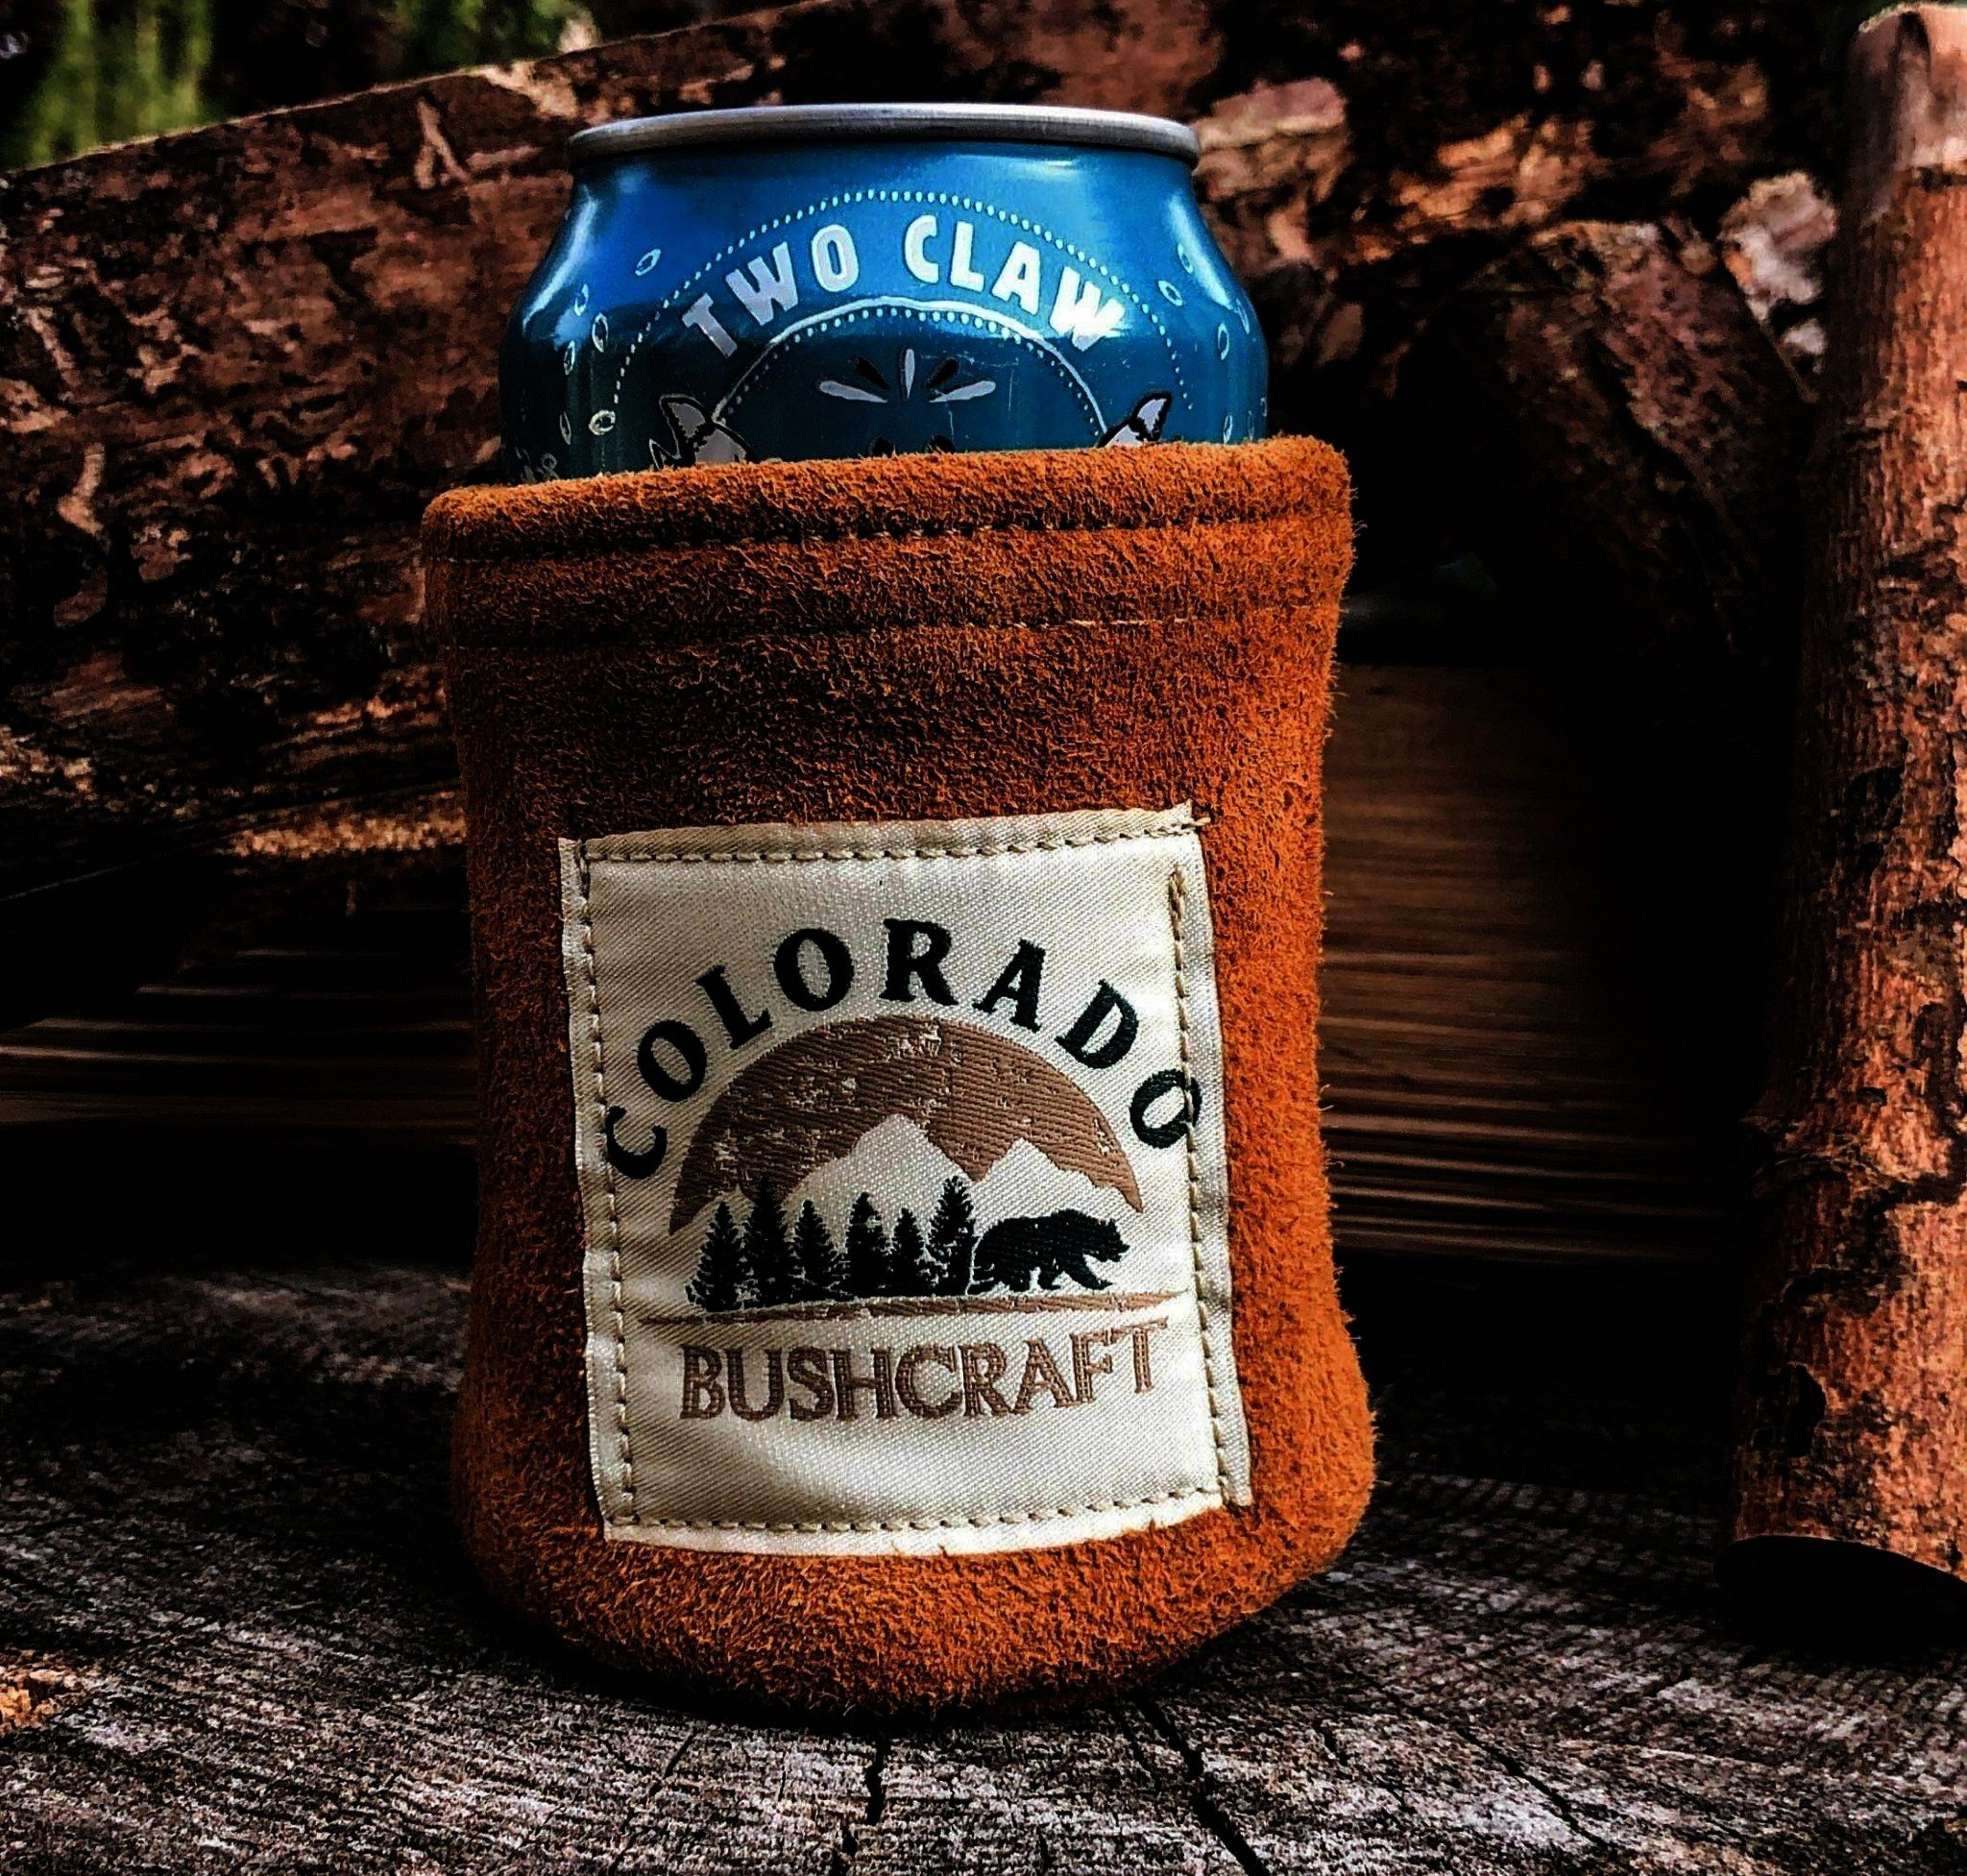 Cooler Coozie Cozy Wool Insulated Tobacco Bushcraft Deerskin Can Cosy Cooler Coozie Cozy Wool Insulated Tobacco Bushcraft Deerskin Can Cosy Cooler Coozie Cozy Wool Insula...